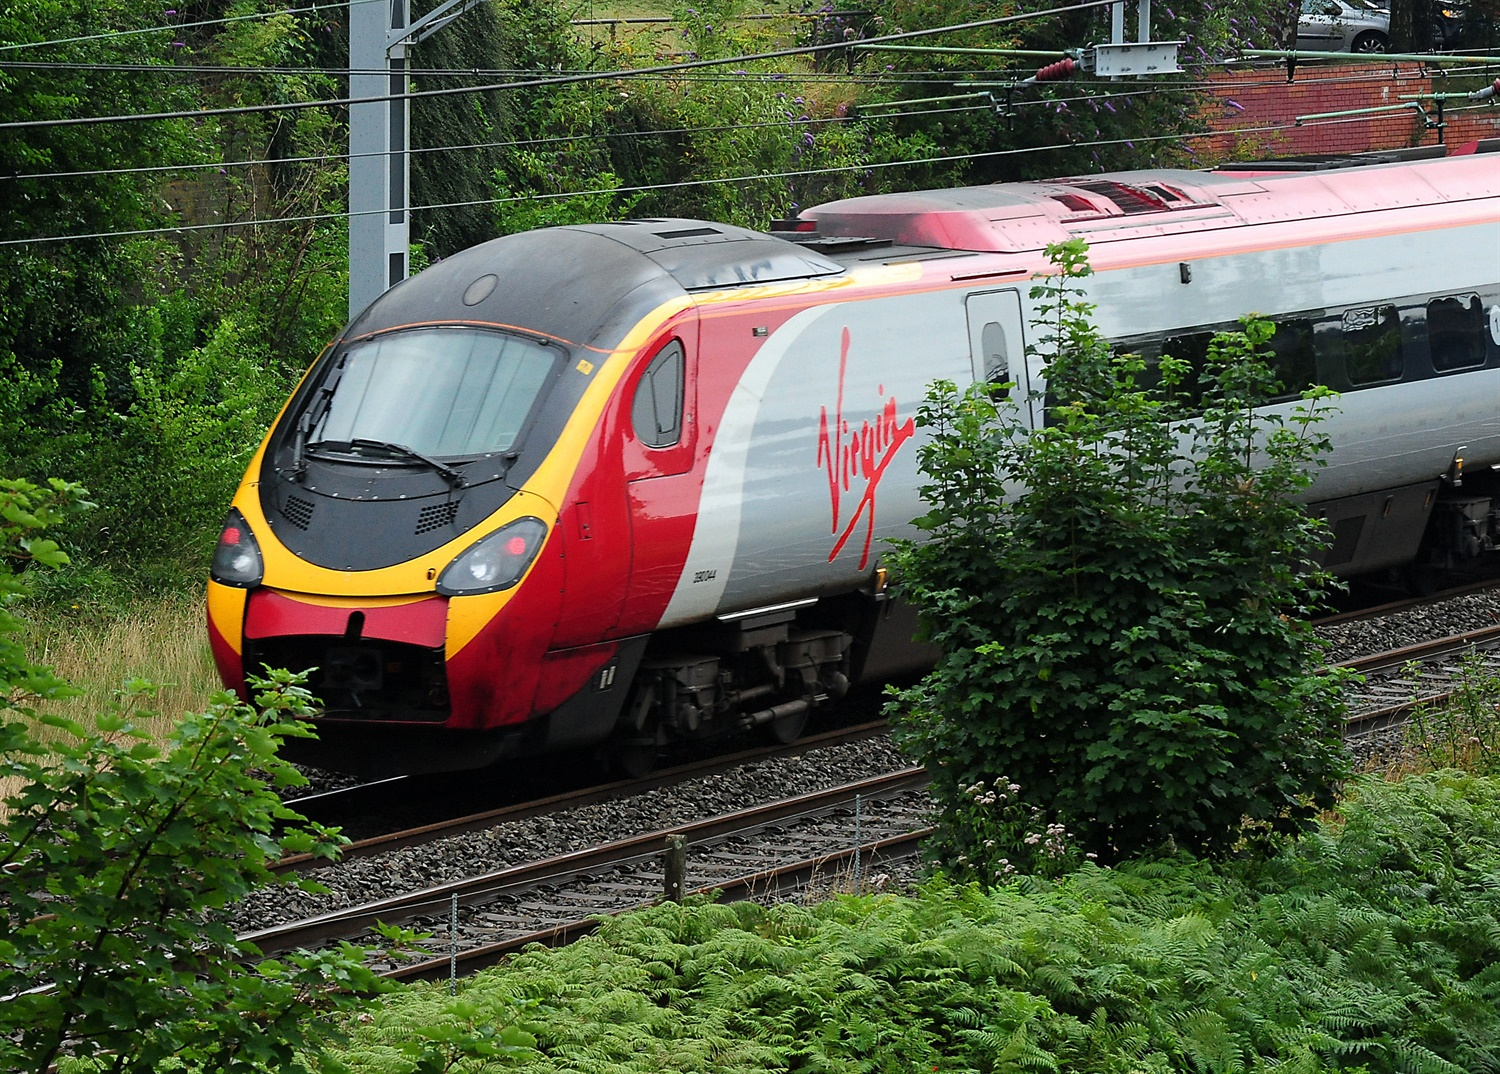 Virgin Trains proposes radical new airline-style model for fares and franchising